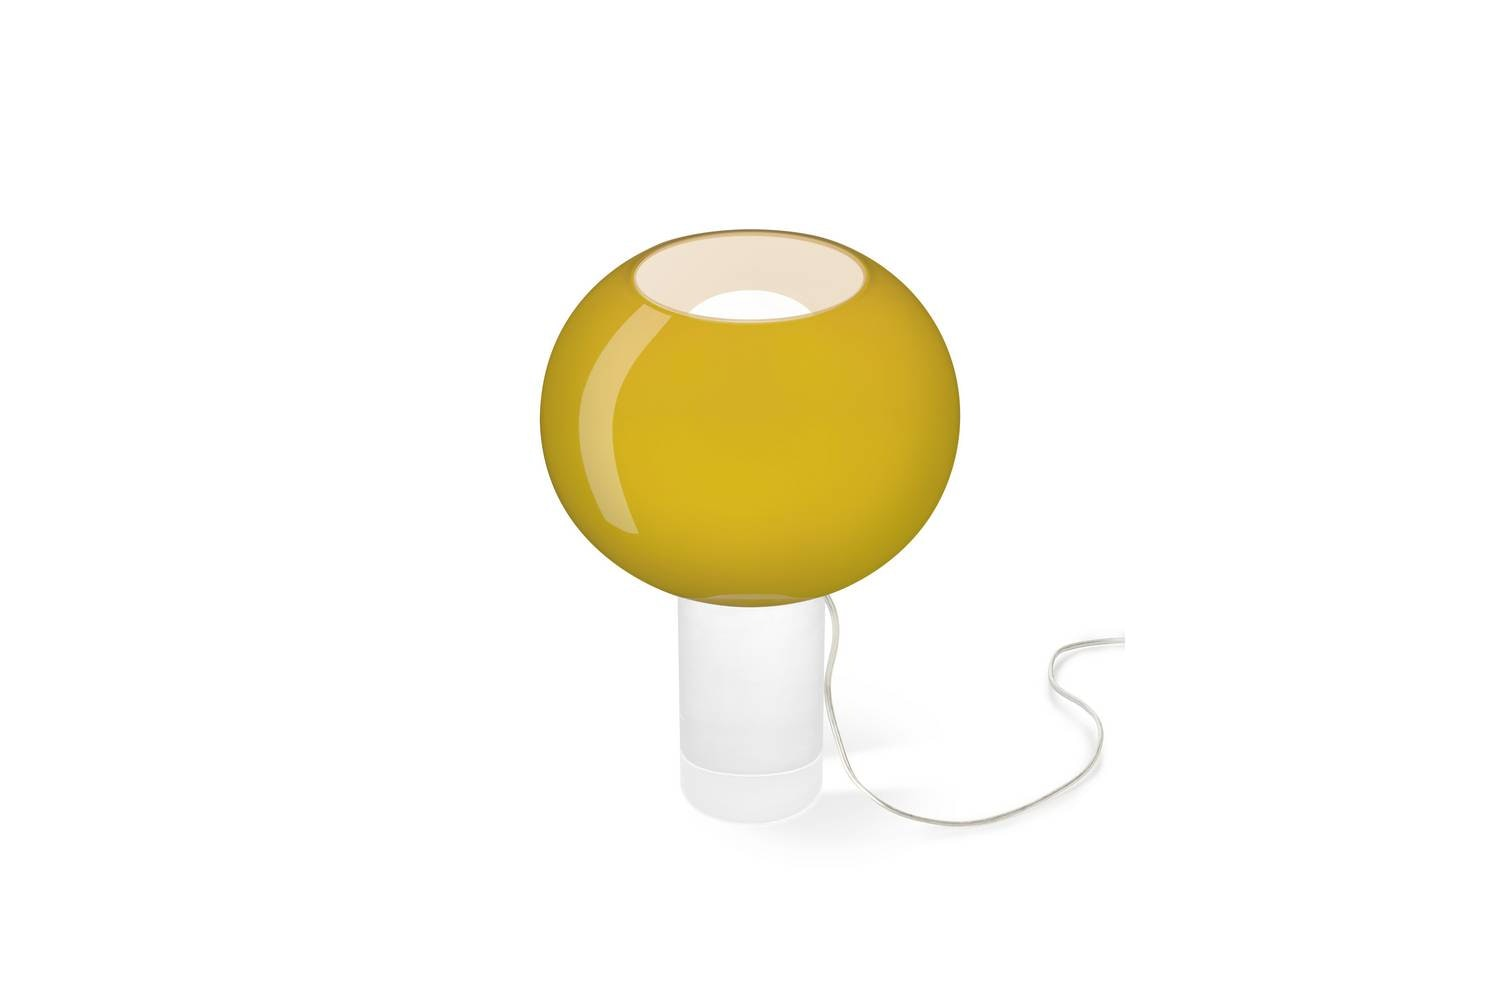 Buds Table Lamp by Rodolfo Dordoni for Foscarini